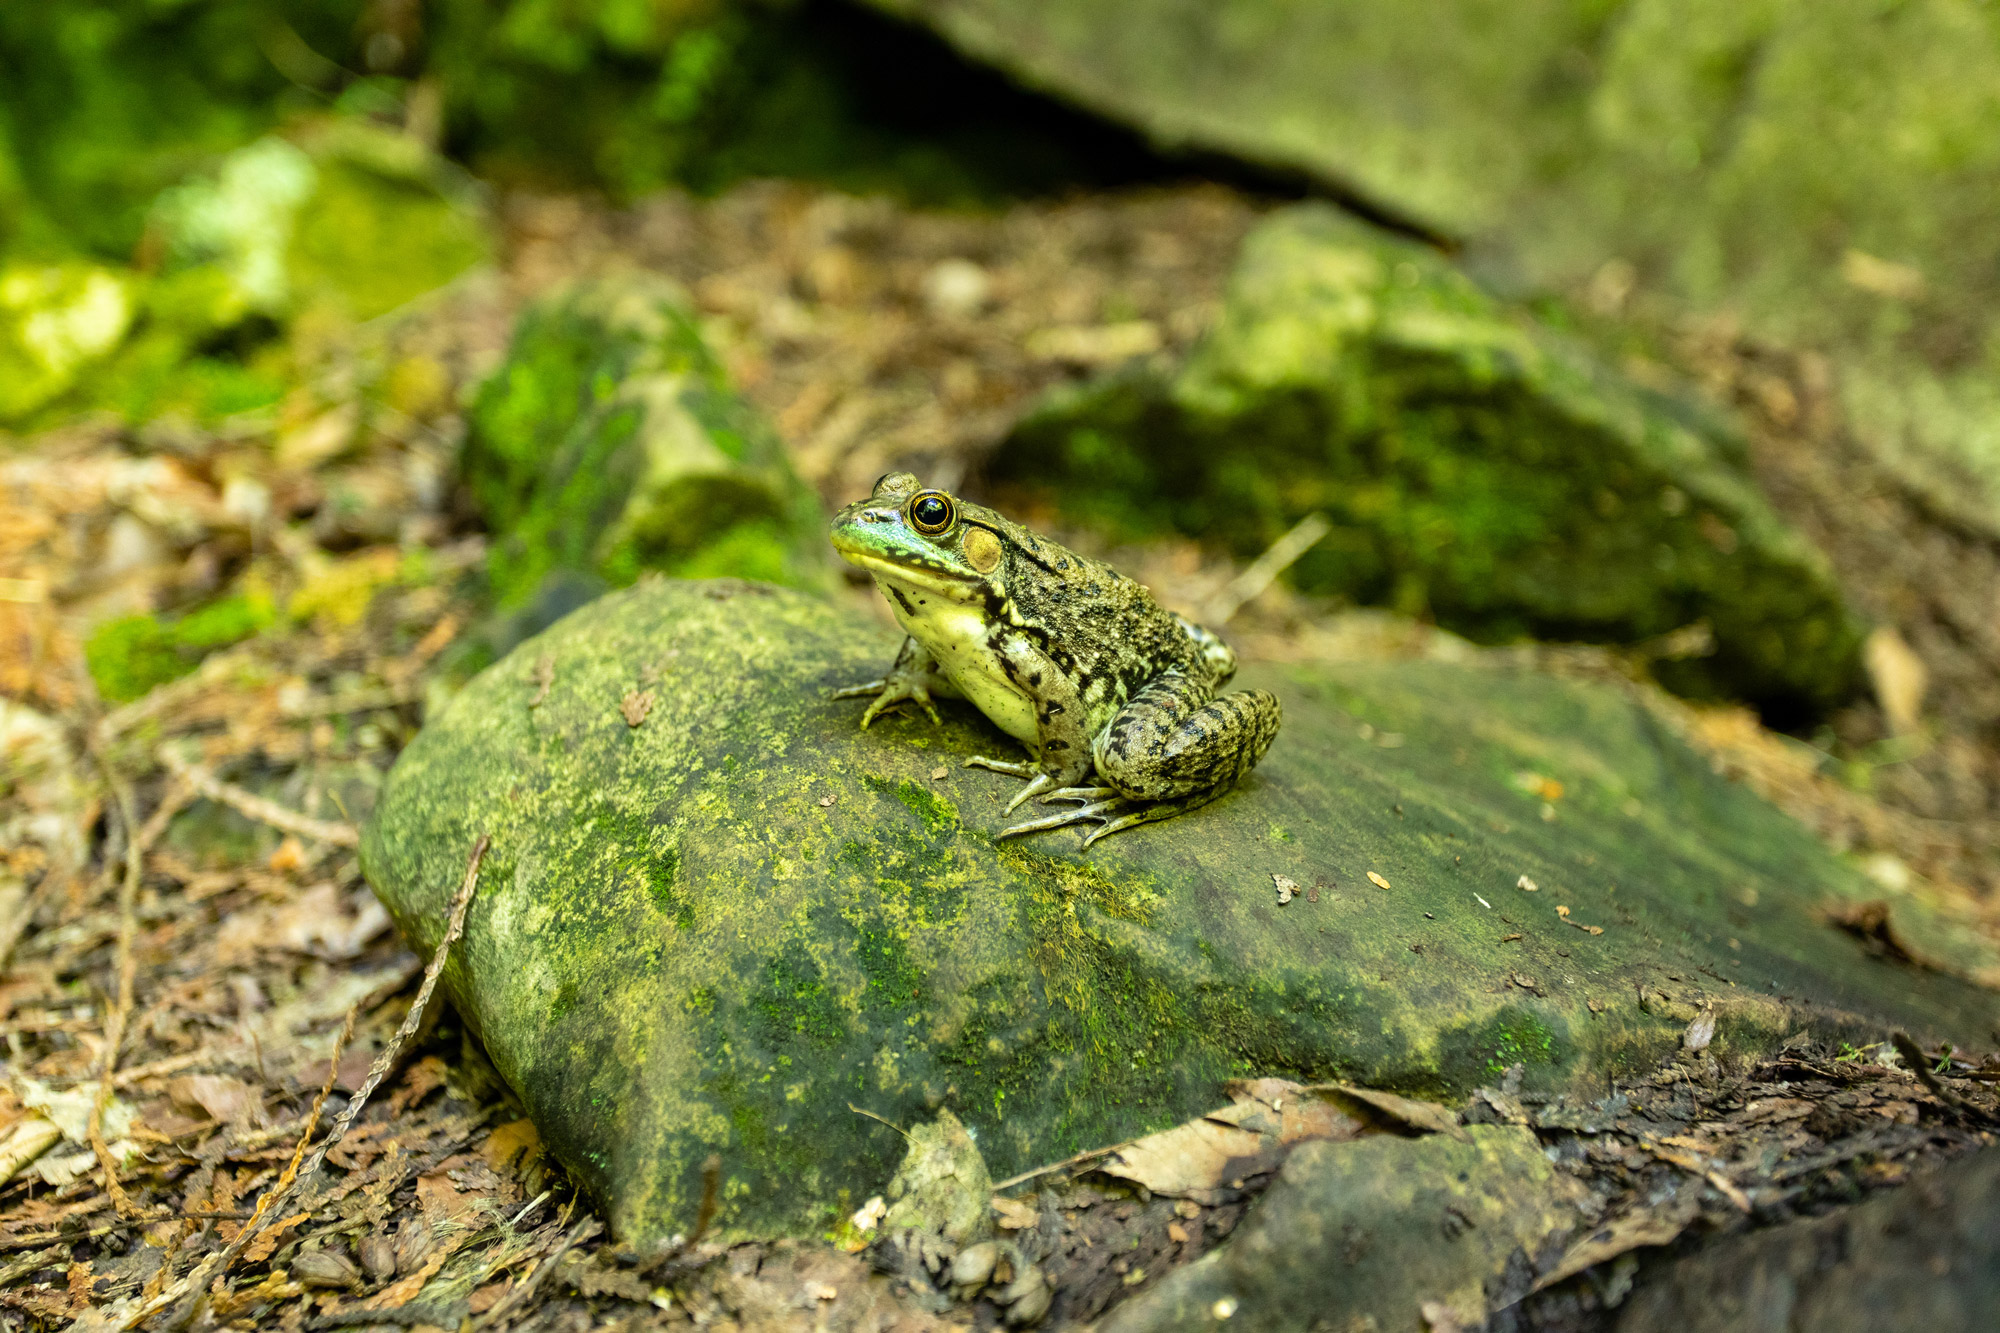 I was able to get surprisingly close to this frog with a 40mm lens